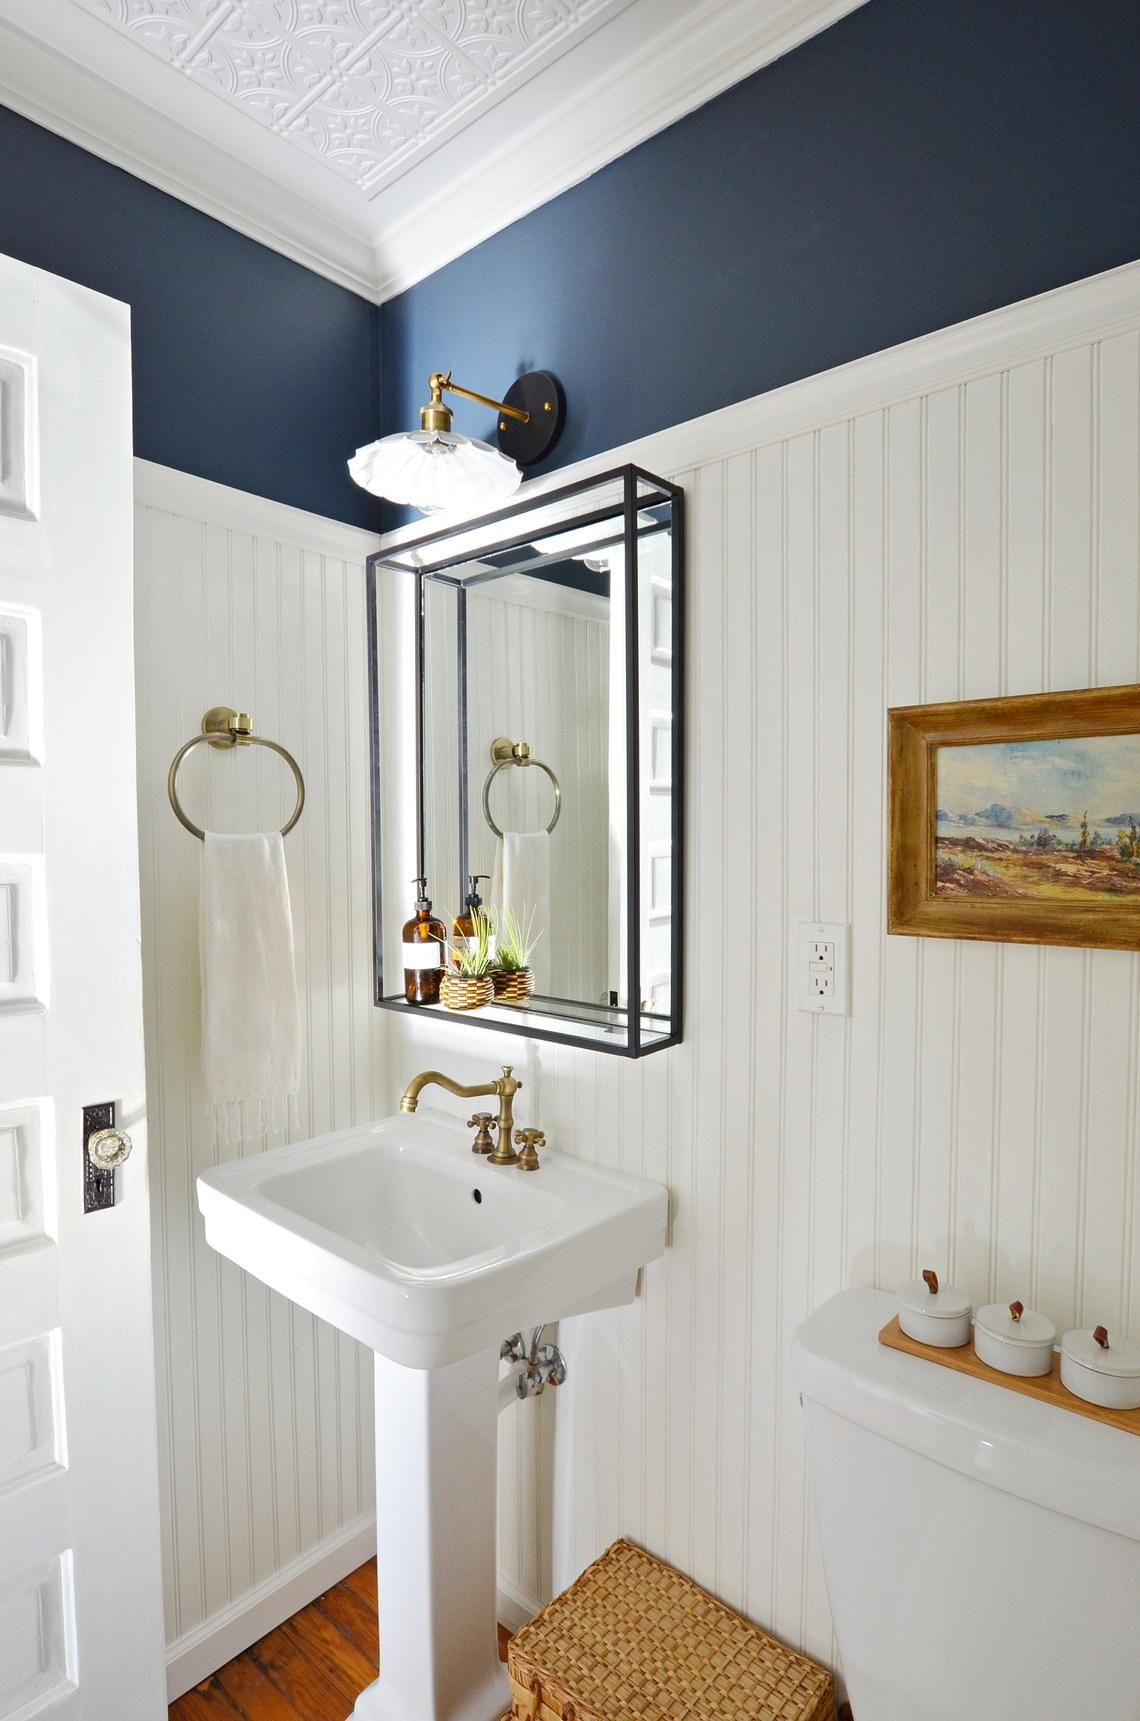 Modern Industrial Black Metal Framed Bathroom Mirror with Shelf | Simplicity in the South #modernpowderrooms